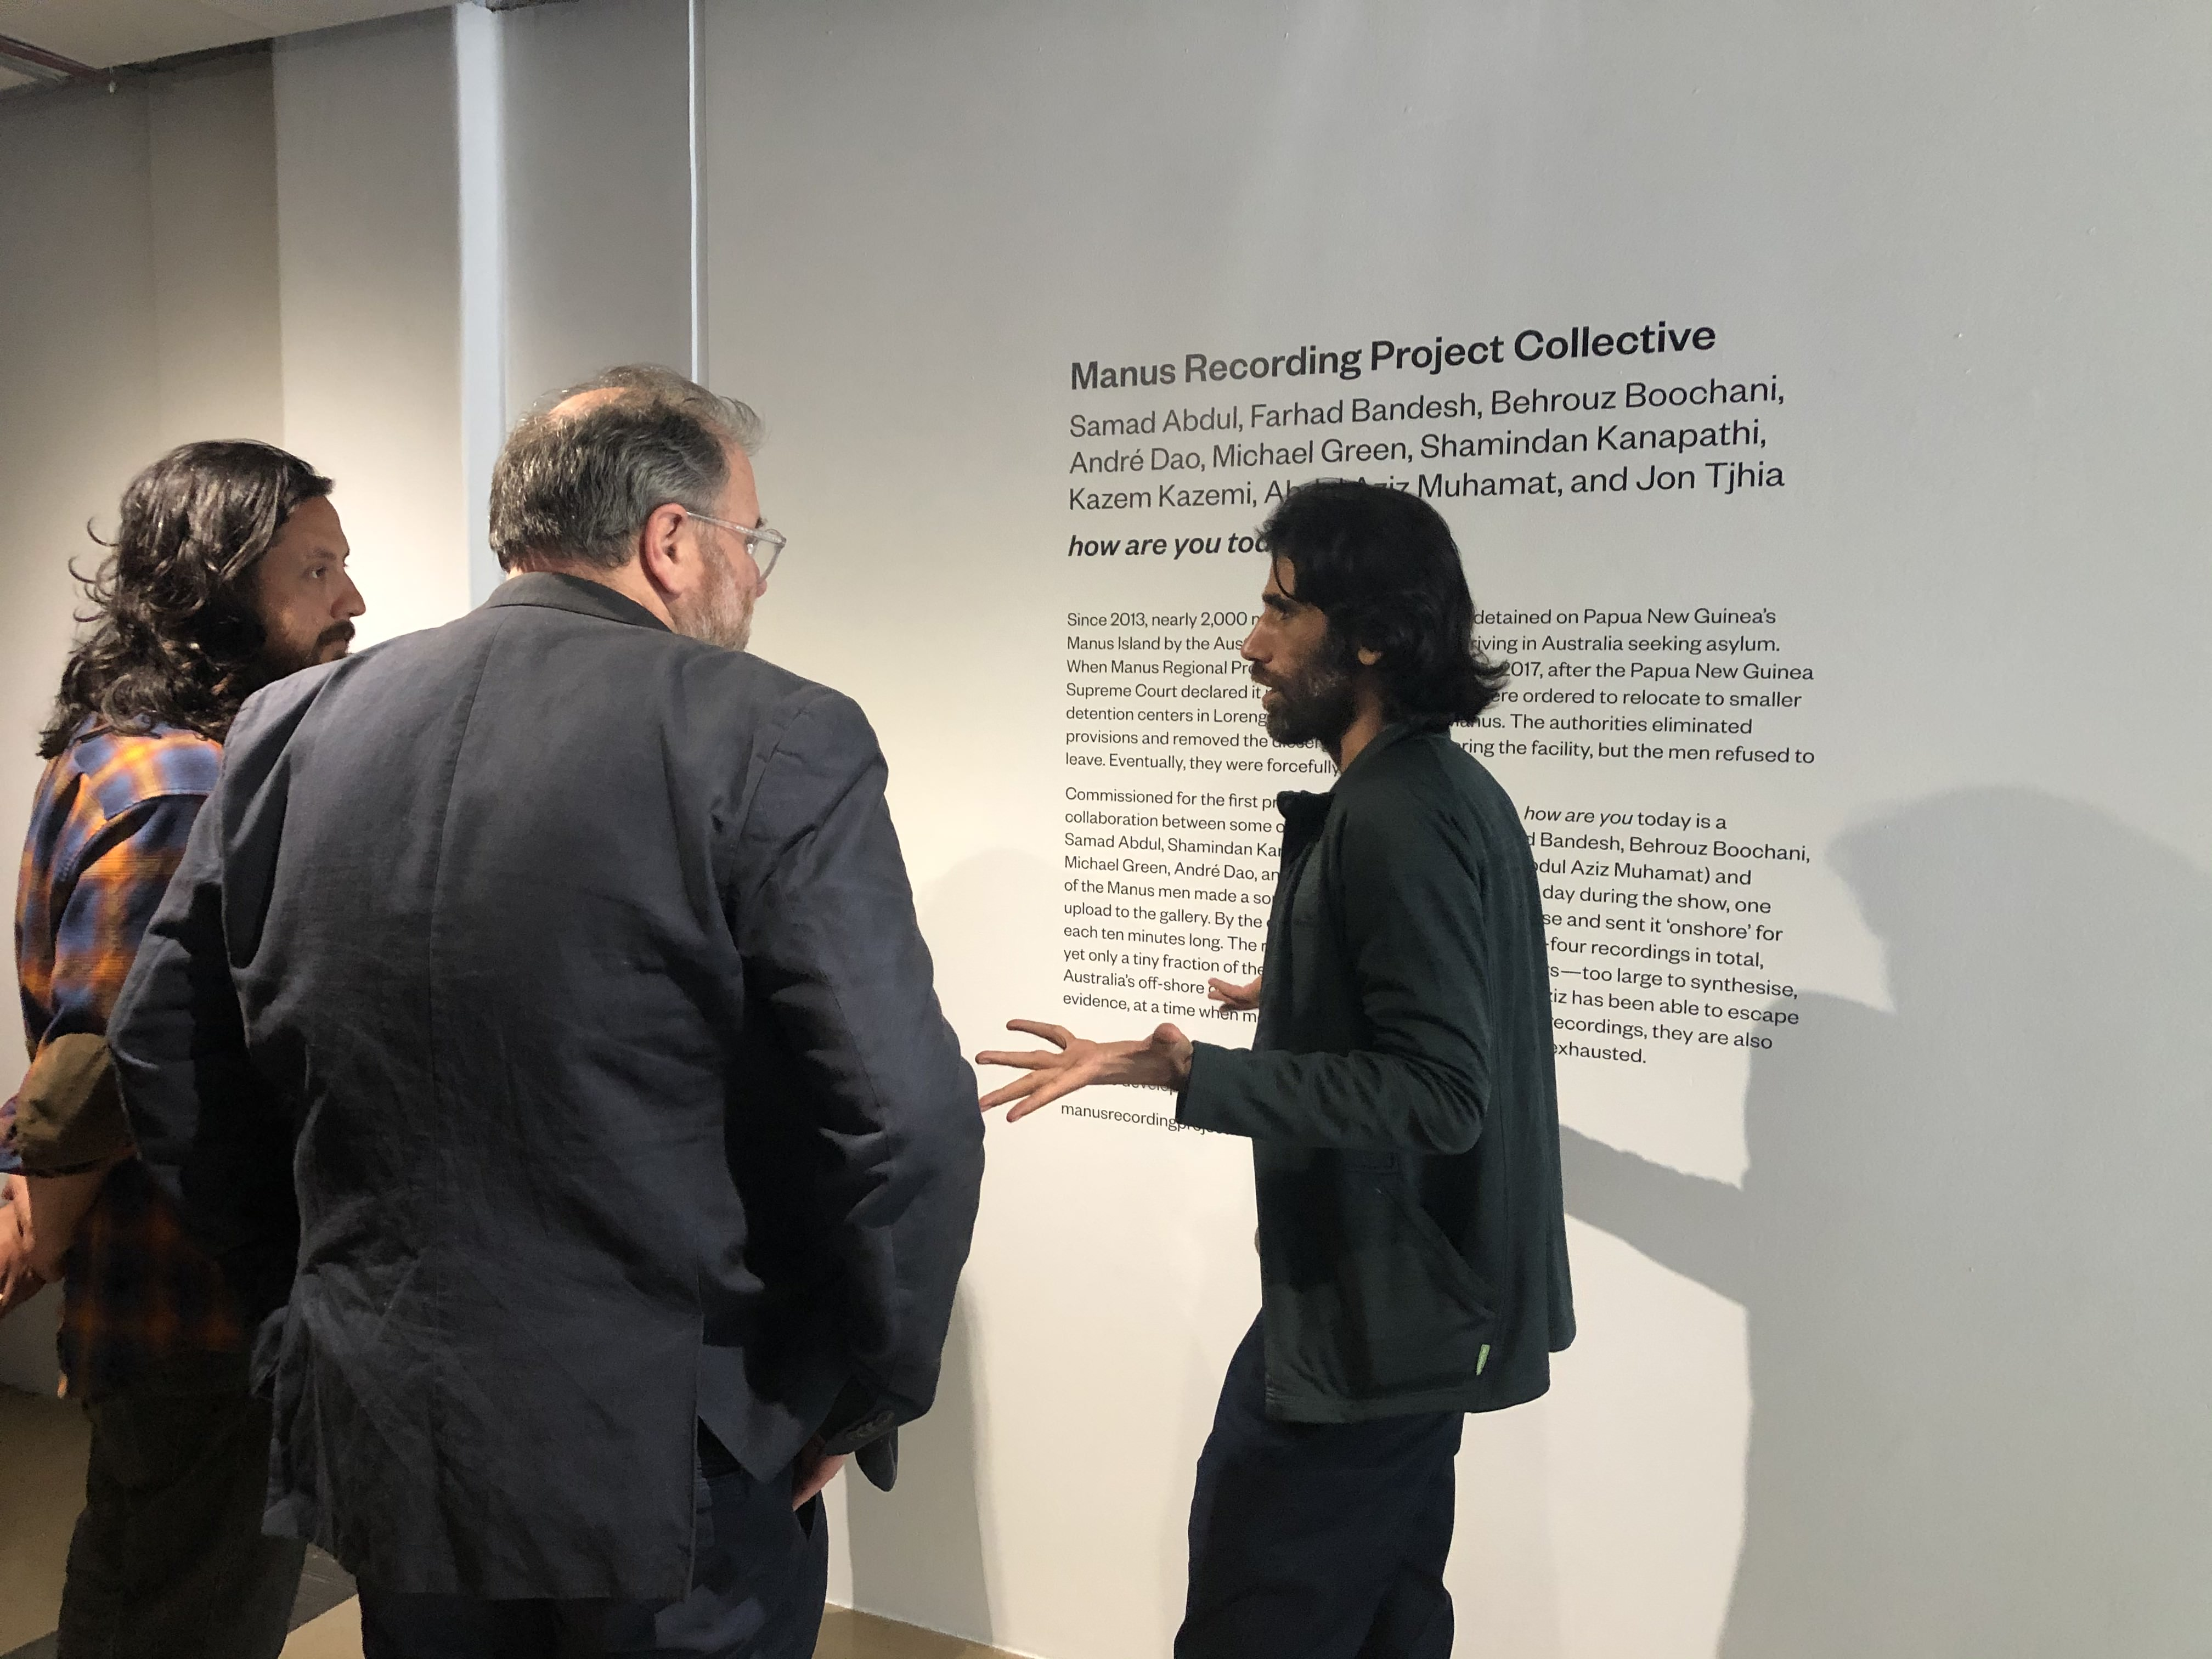 <p>Behrouz Boochani (right) with artist Bryan Philips and curator Robert  Leonard, next to the work <em>how are you today</em> by Manus Recording Project Collective, City Gallery Wellington, November 17, 2019.</p>